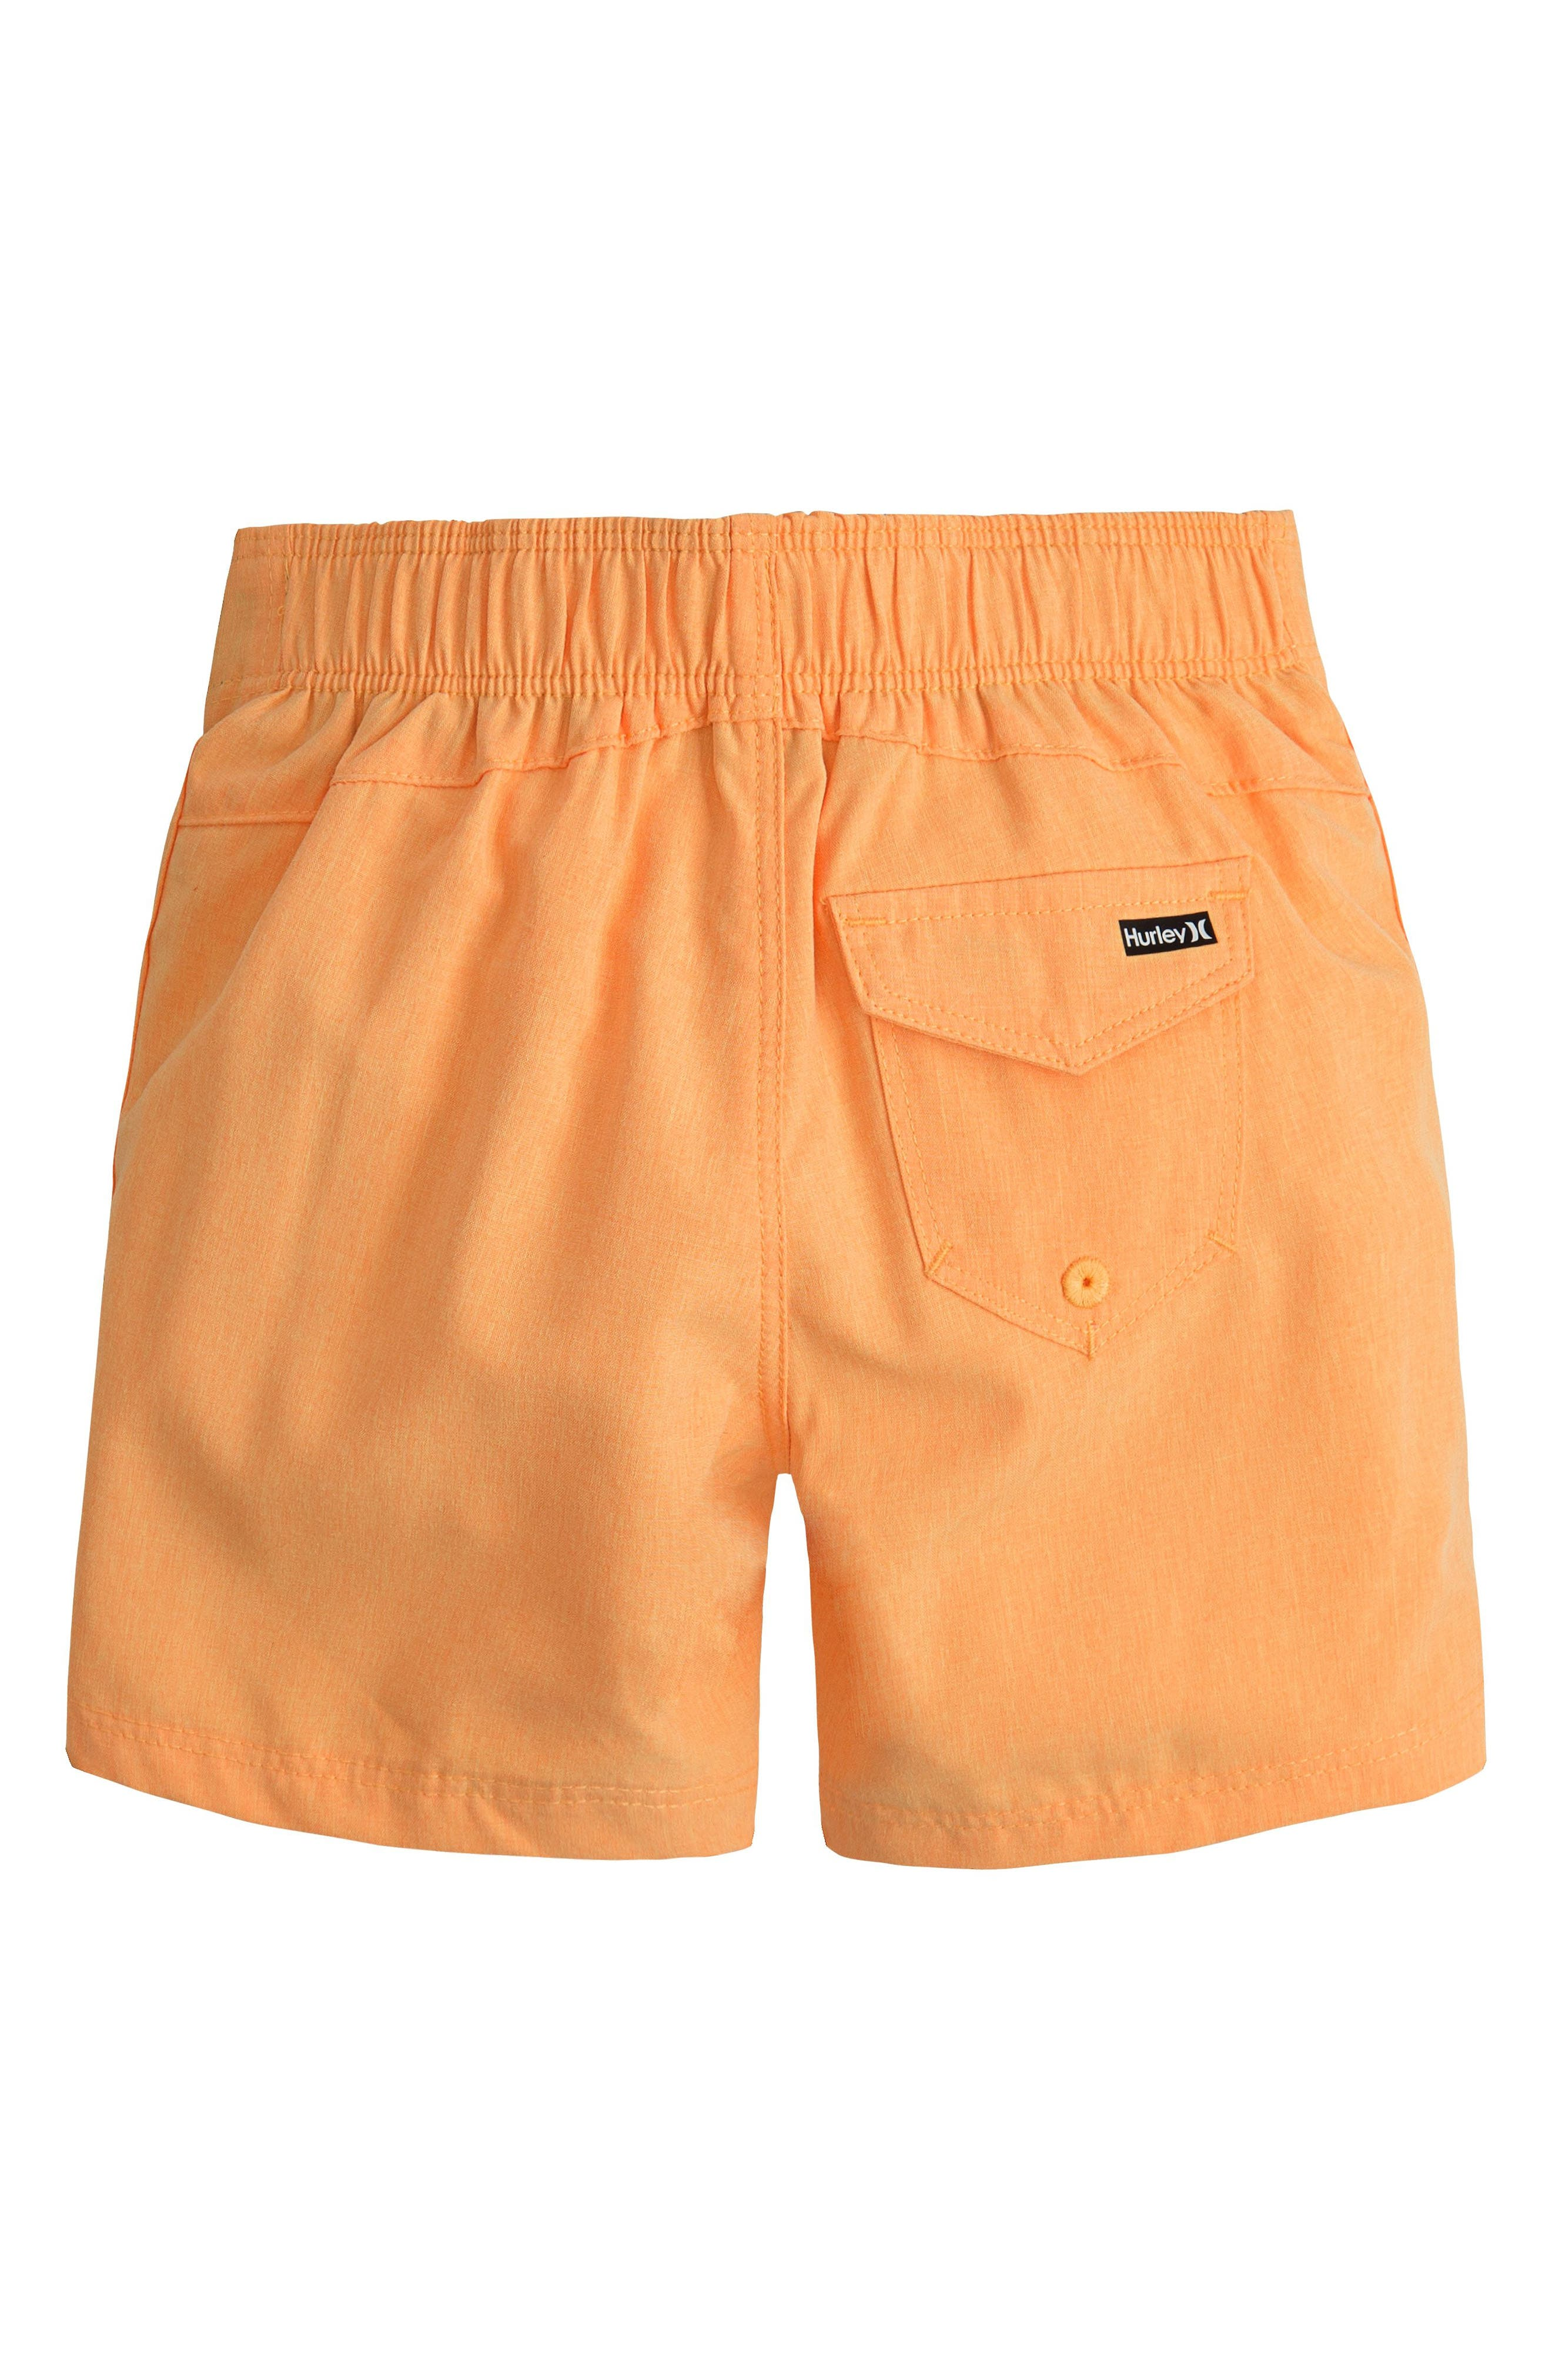 One and Only Dri-FIT Board Shorts,                             Alternate thumbnail 2, color,                             Laser Orange Heather